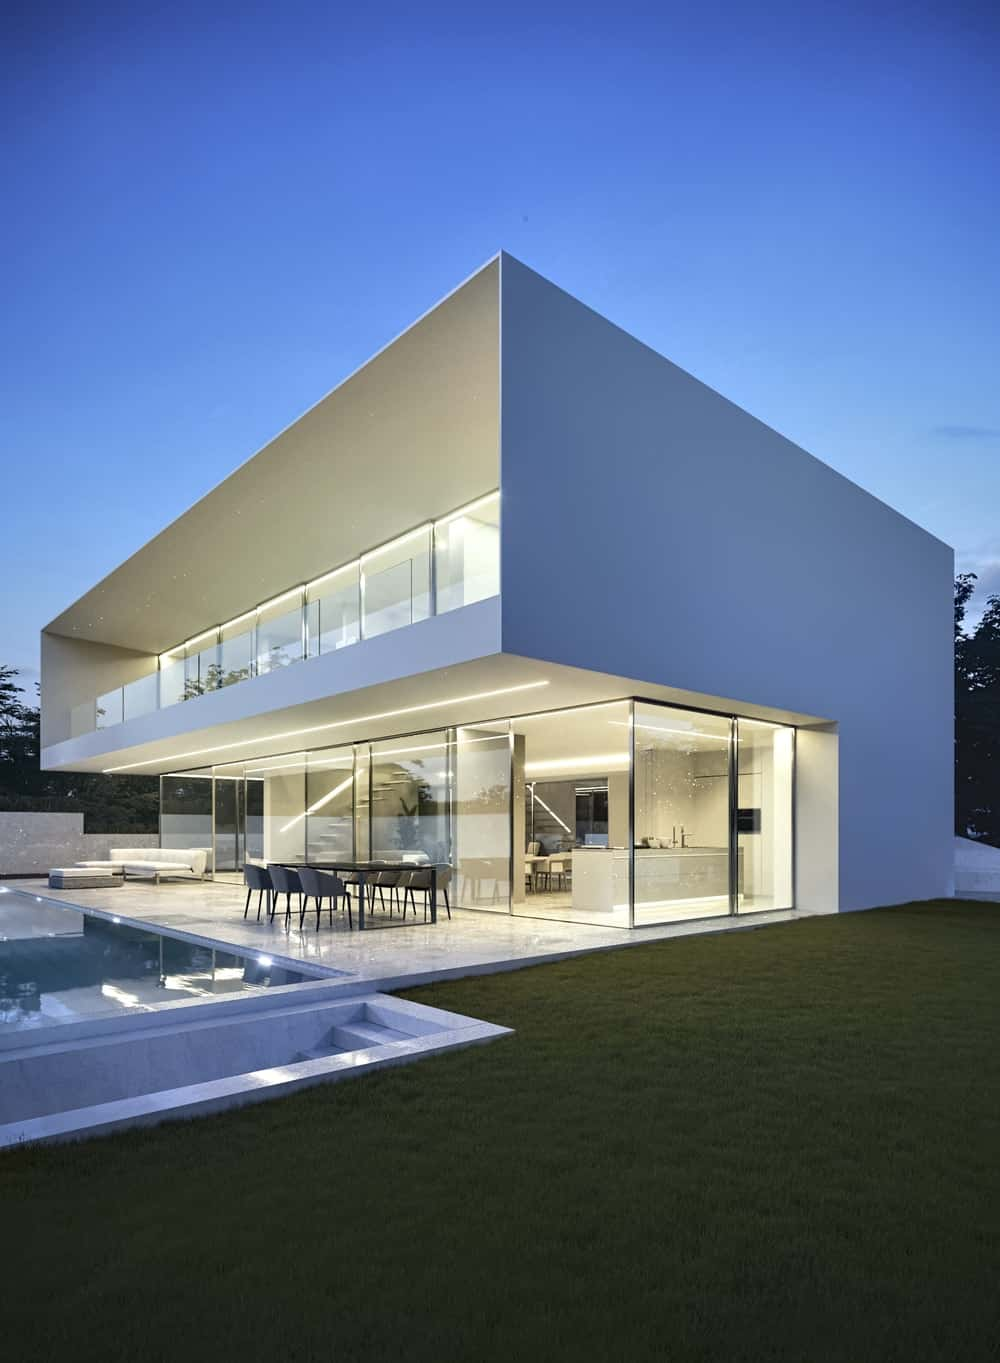 This is a view of the house showcasing the covered patio and the large balcony with glass railings and both levels are lit.